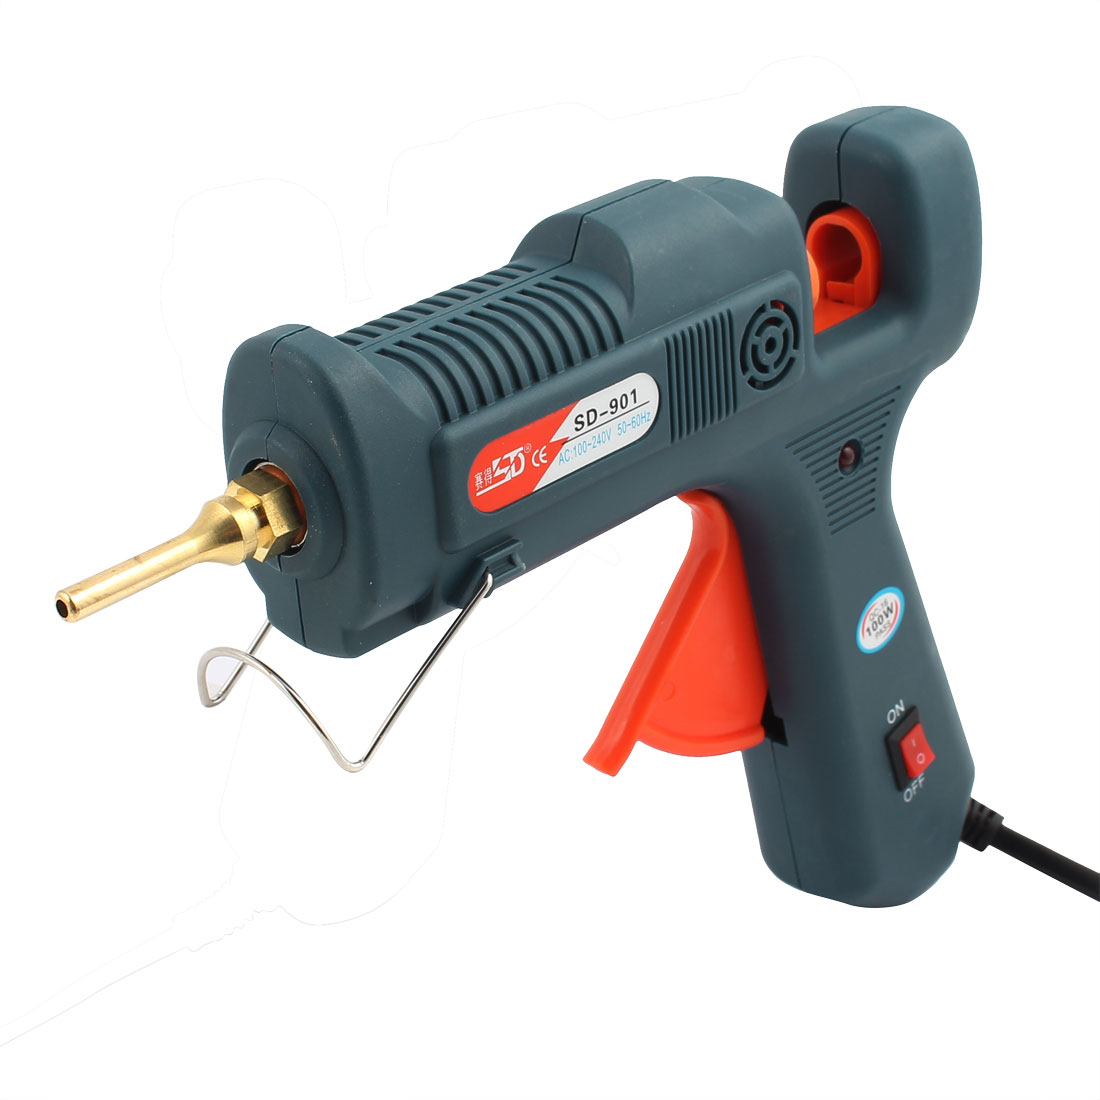 AC 100-240V 100W US Plug Green Hot Melt Glue Gun for DIY Small Craft Projects by Unique-Bargains